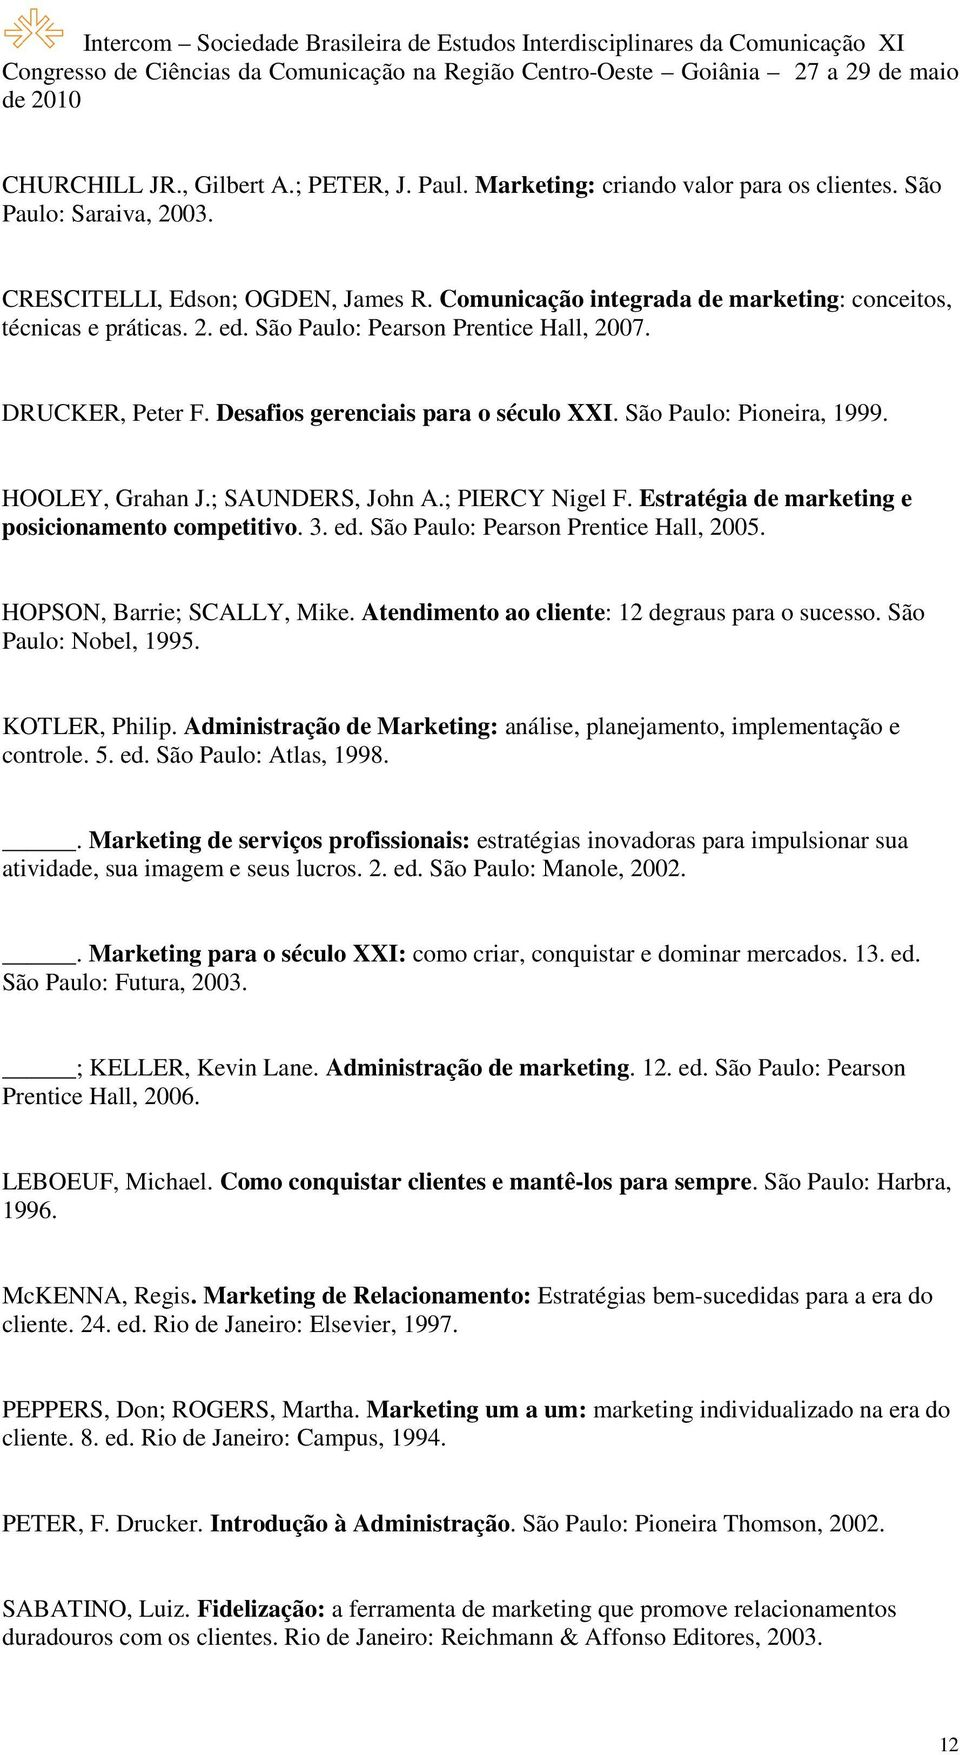 HOOLEY, Grahan J.; SAUNDERS, John A.; PIERCY Nigel F. Estratégia de marketing e posicionamento competitivo. 3. ed. São Paulo: Pearson Prentice Hall, 2005. HOPSON, Barrie; SCALLY, Mike.